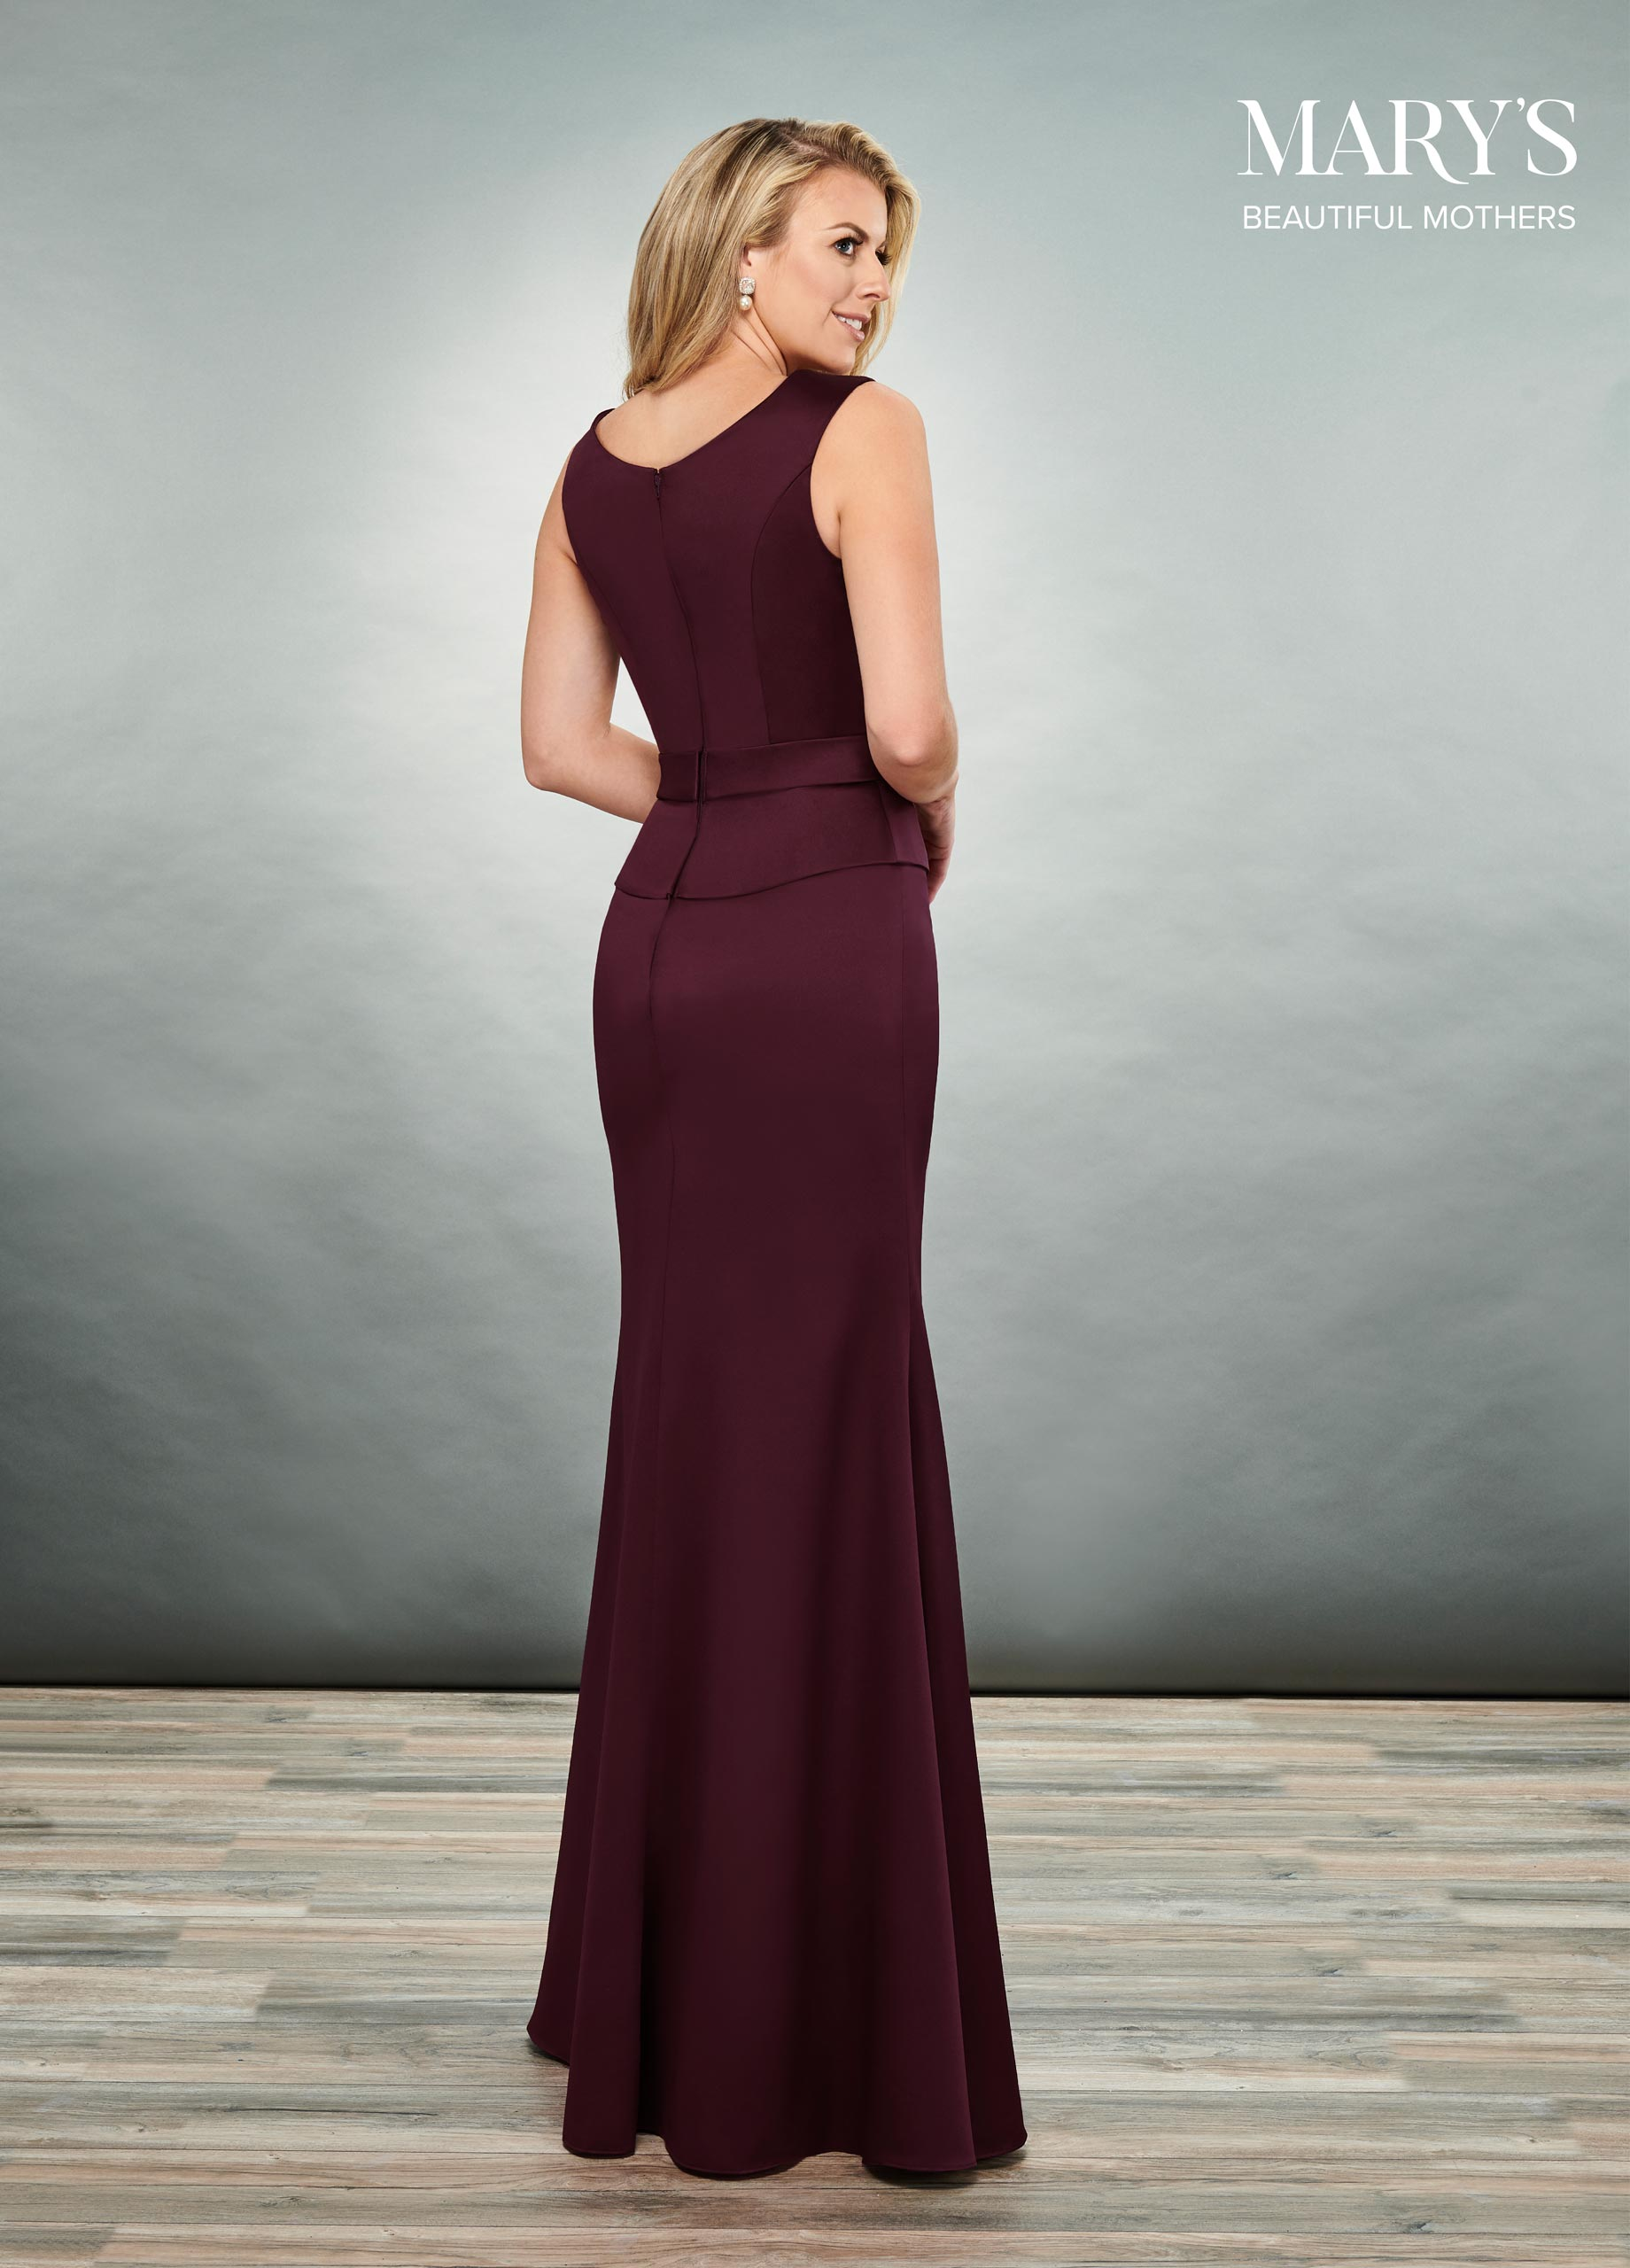 Mother Of The Bride Dresses | Beautiful Mothers | Style - MB8076